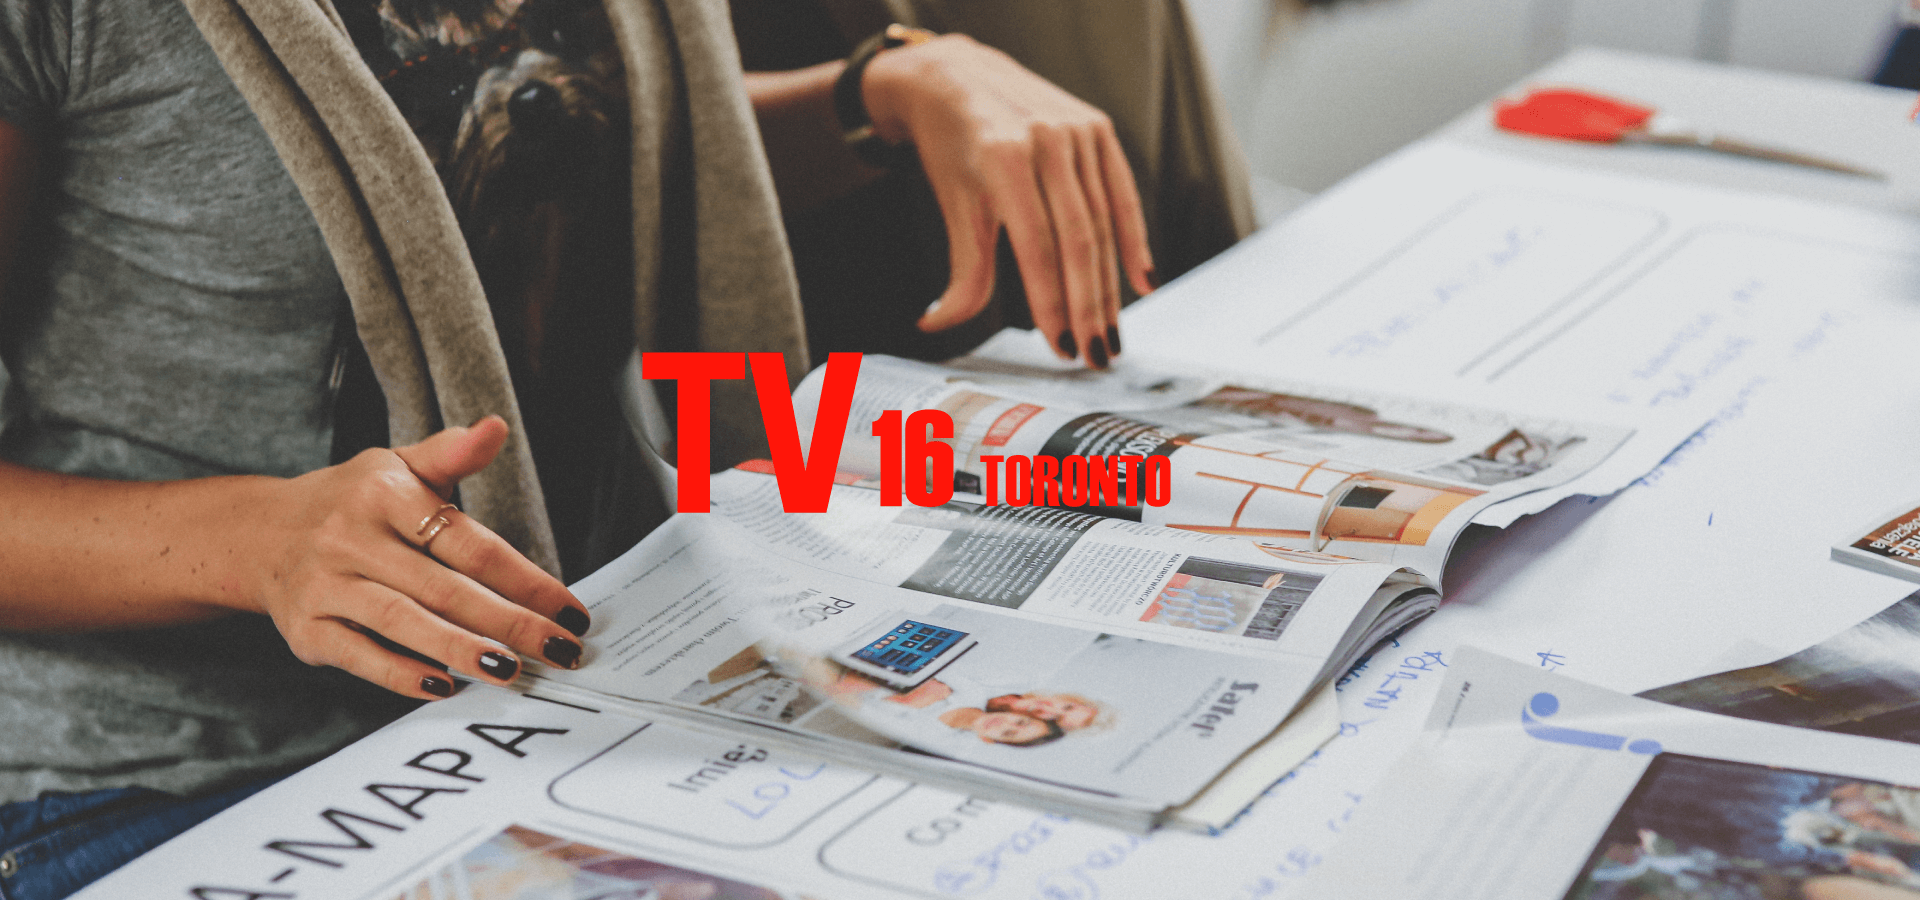 Web Design for Tv 16 Toronto